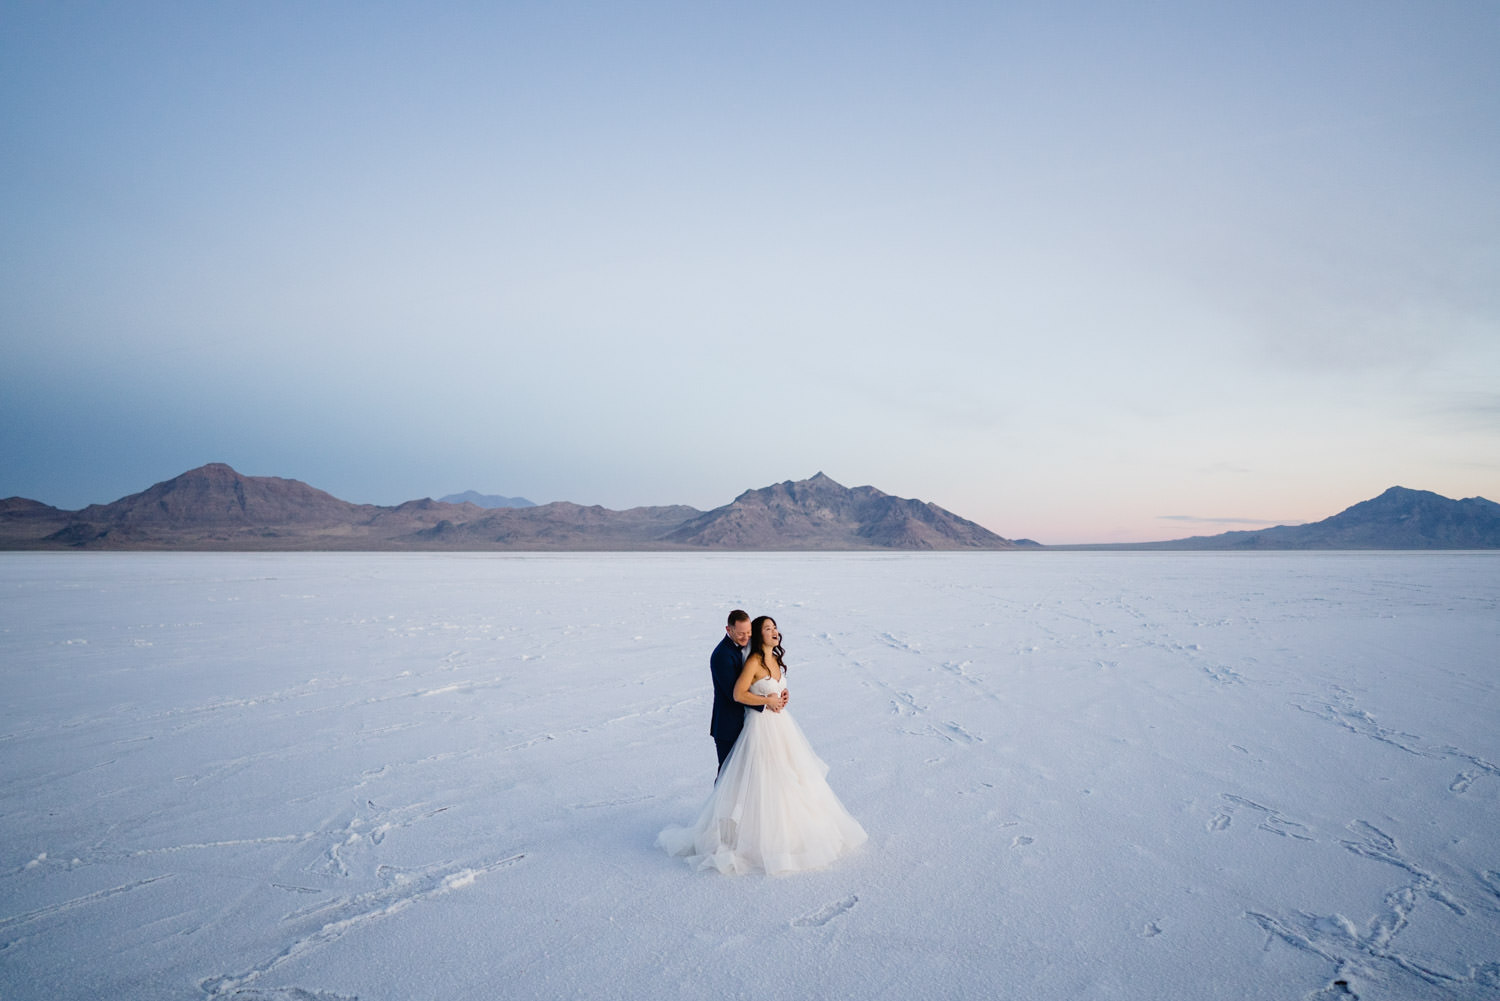 Bonneville Salt Flats wedding intimate portrait with landscape photo